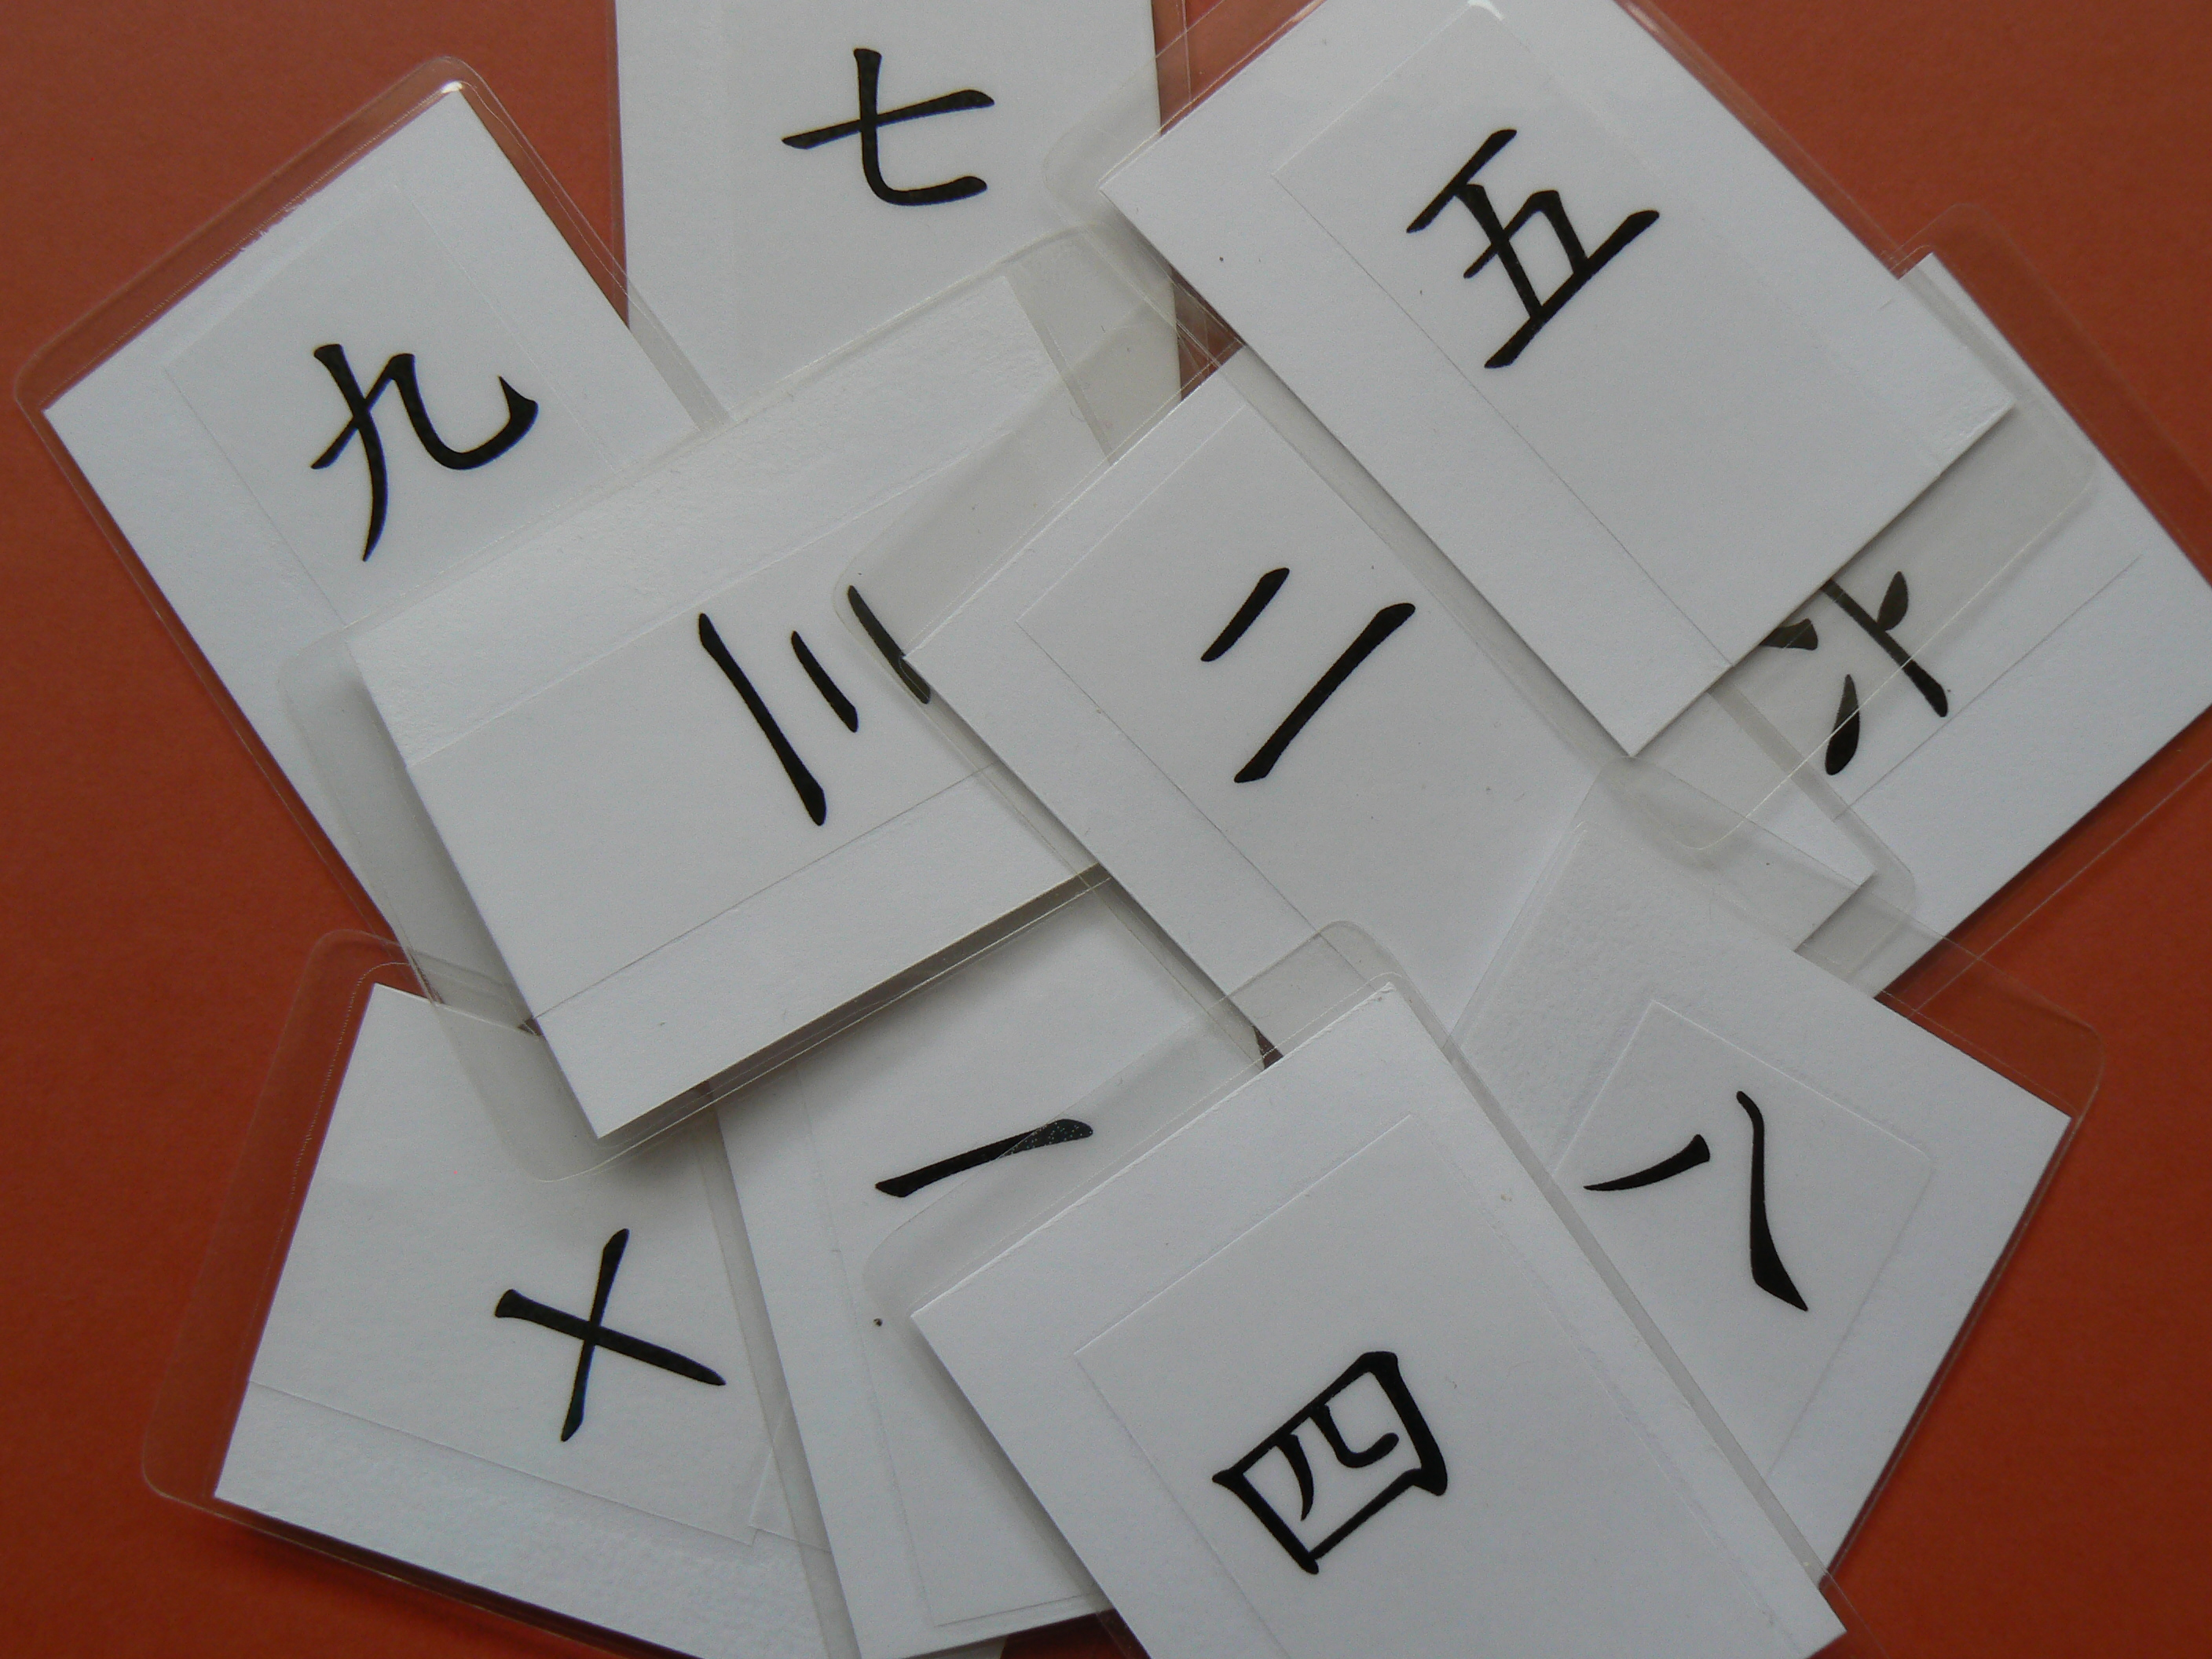 Learn to count using Chinese character cards